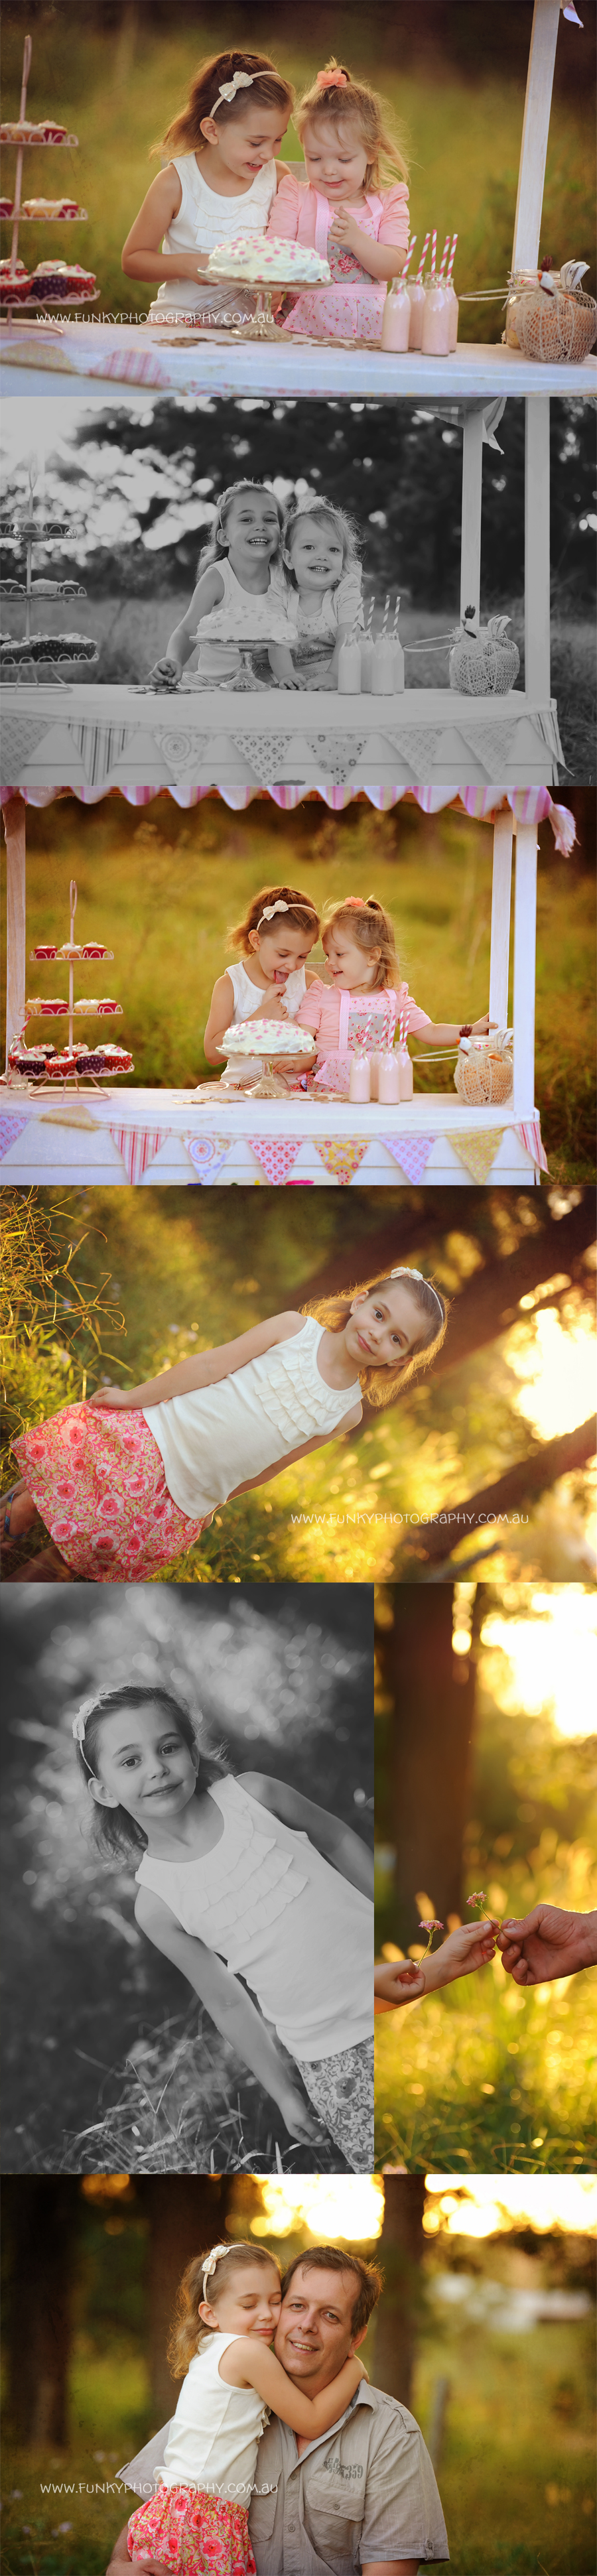 vintage cake stall photography props with bunting